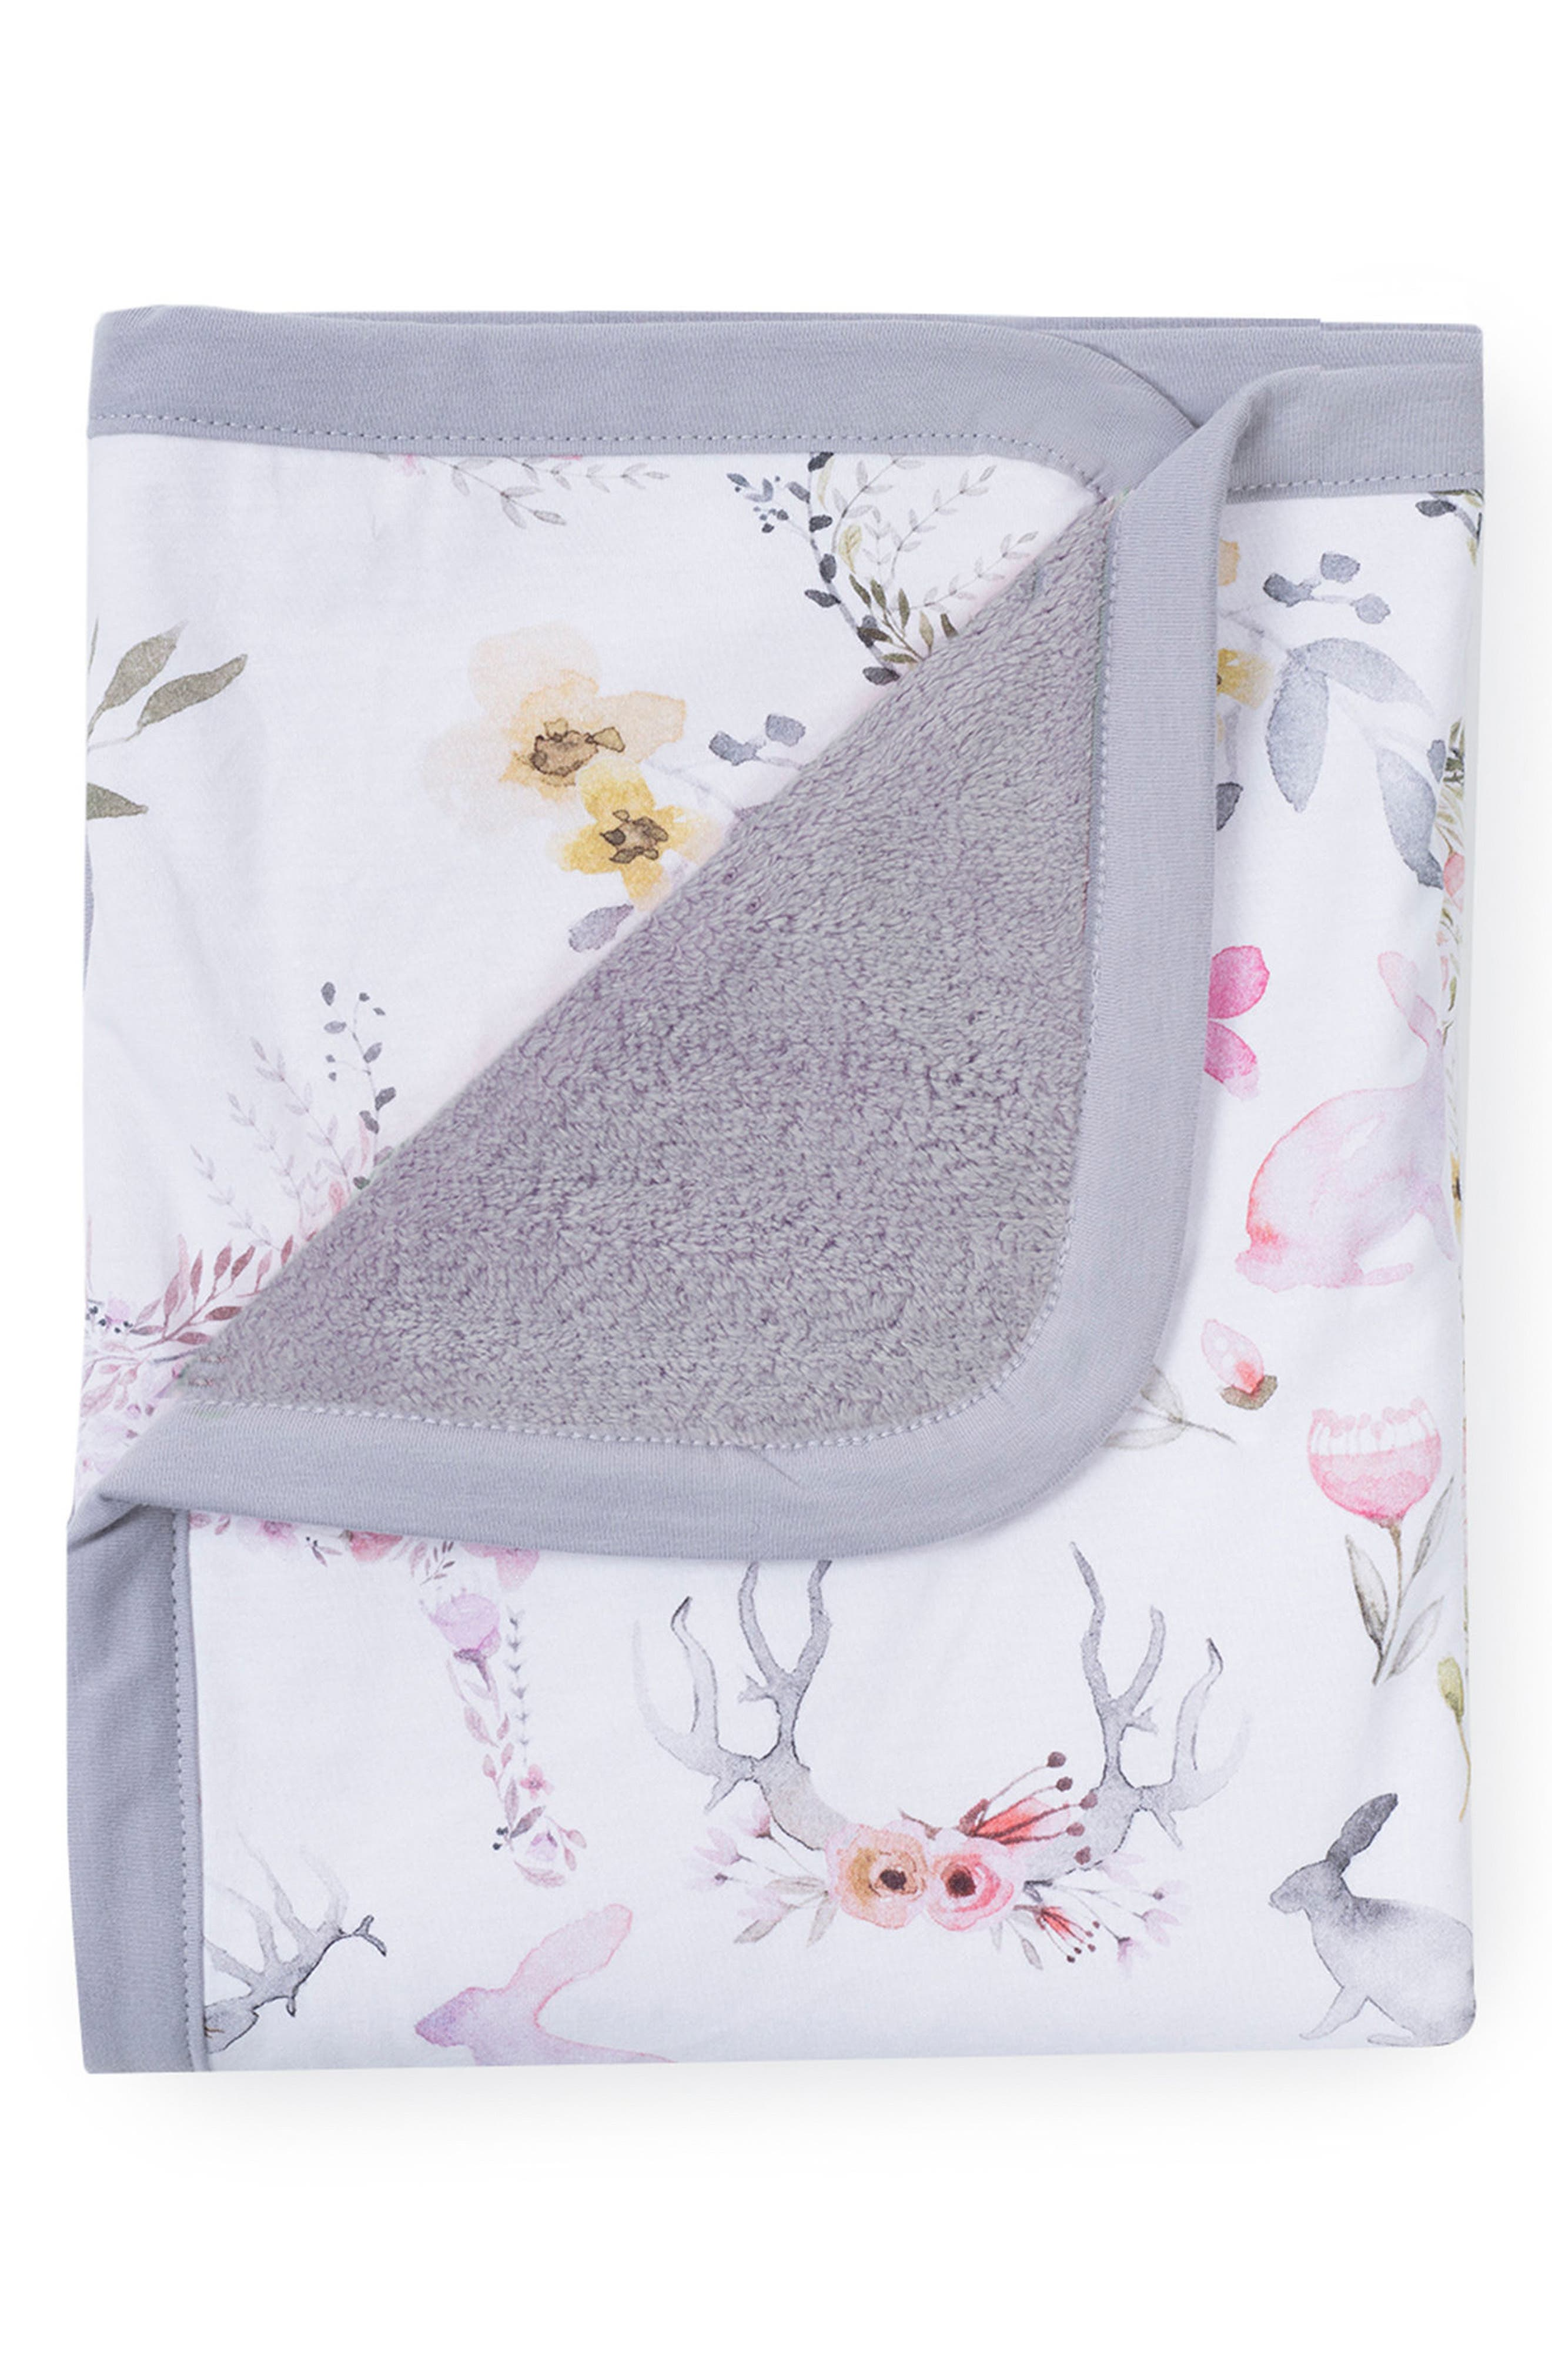 Fawn Cuddle Blanket,                             Main thumbnail 1, color,                             FAWN